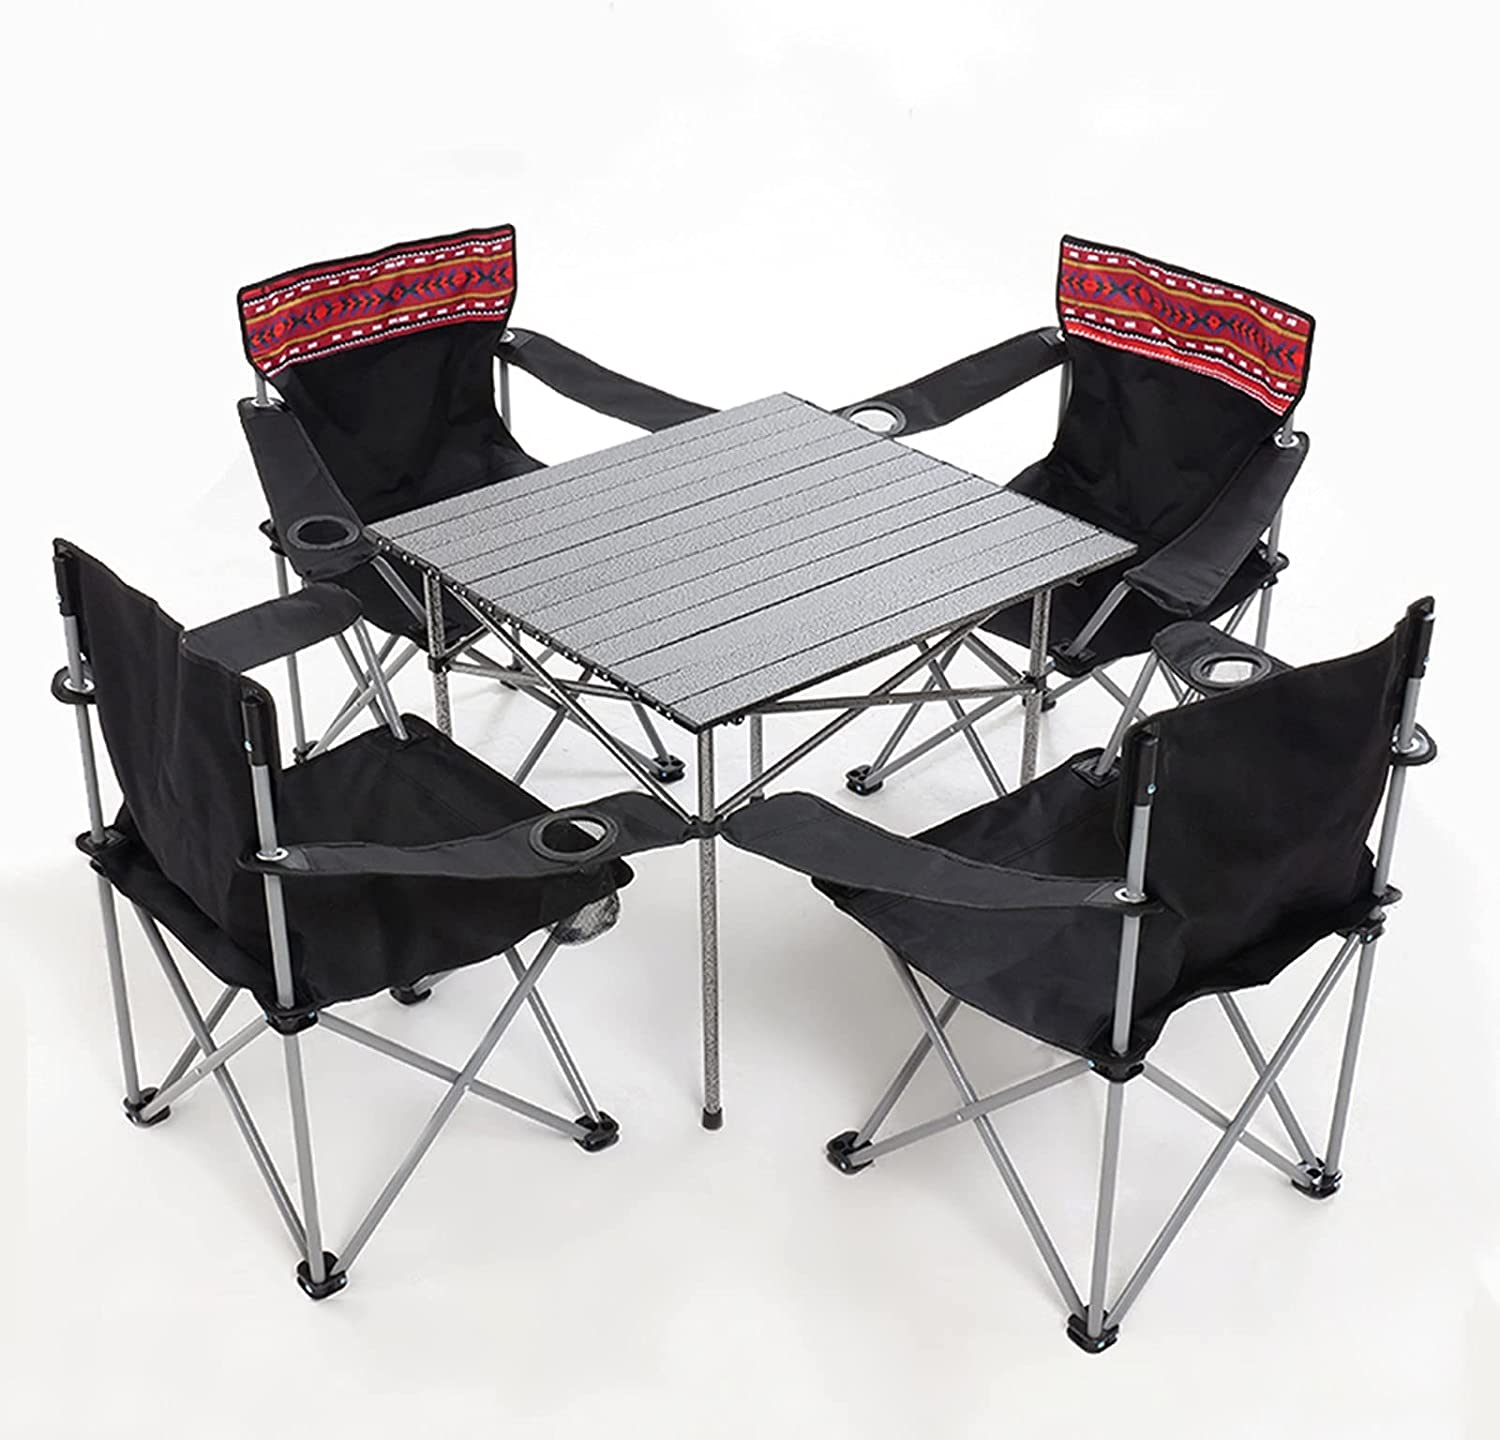 HOLPPO Portable Outdoor shopping Table 2021 new Camping Set Folding Ca